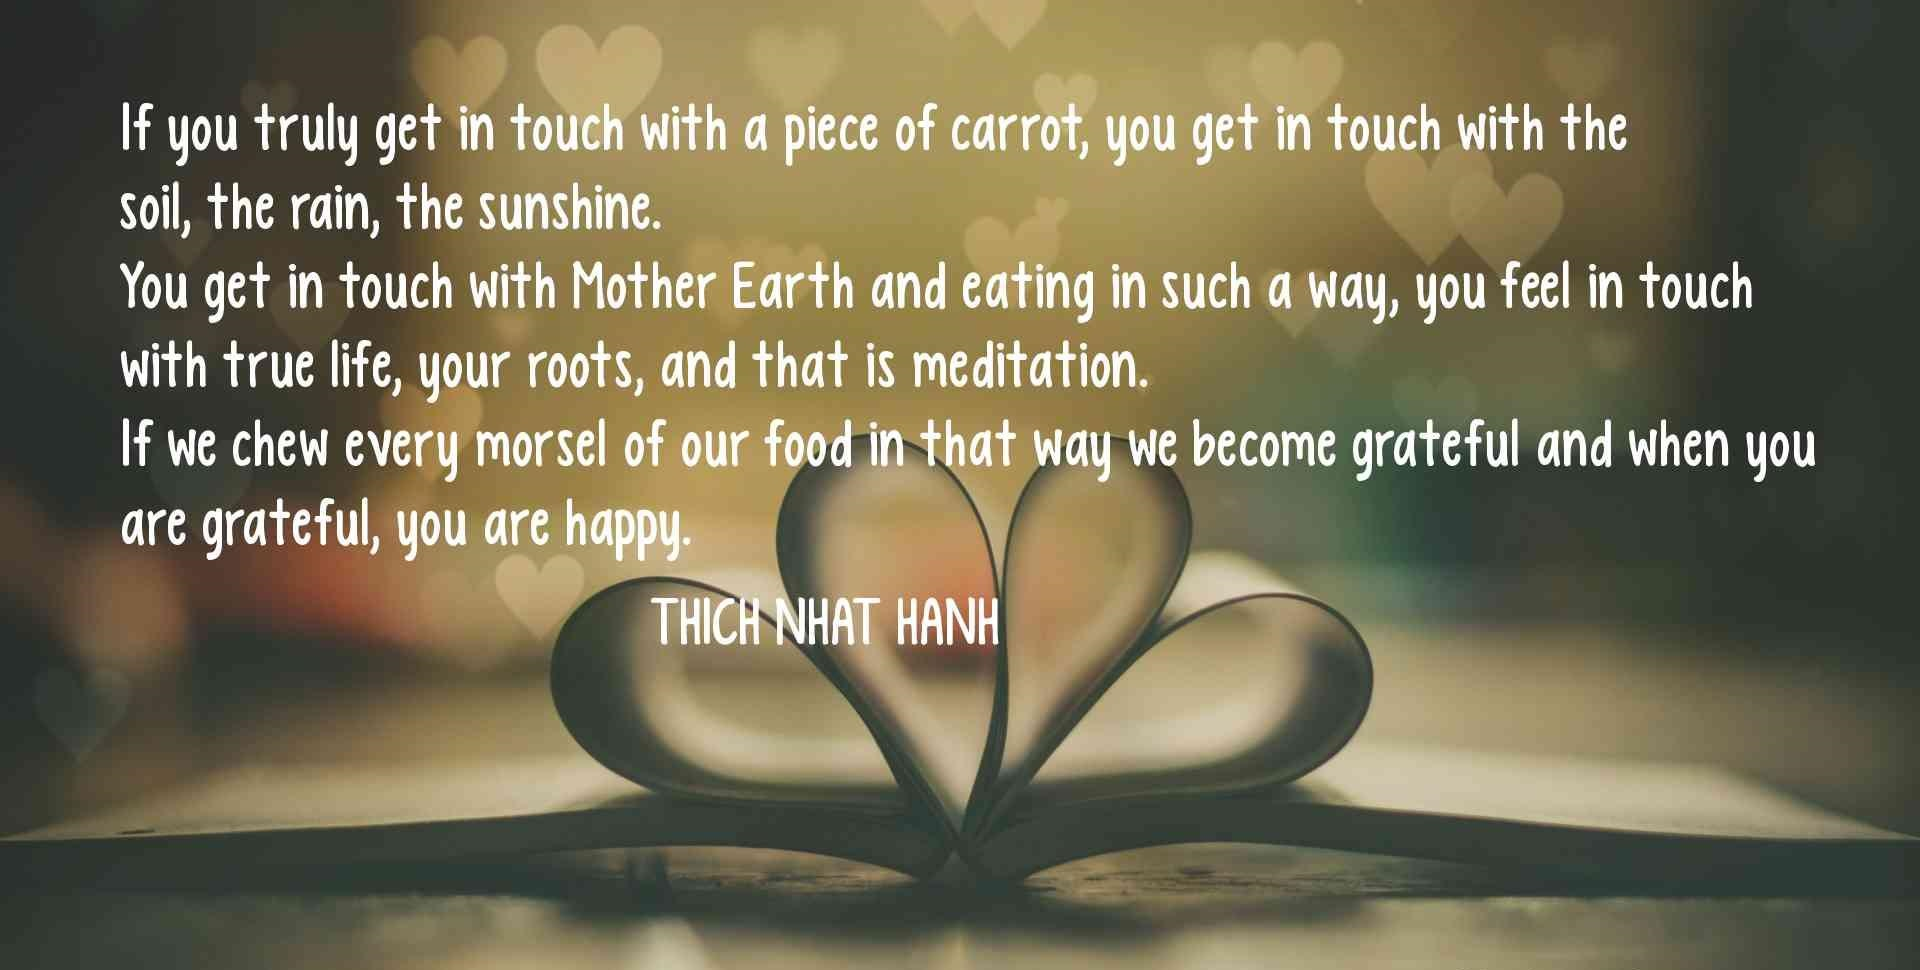 Quotes About Food And Friendship Quotes About Foodthich Nhat Hanh  Upload Mega Quotes